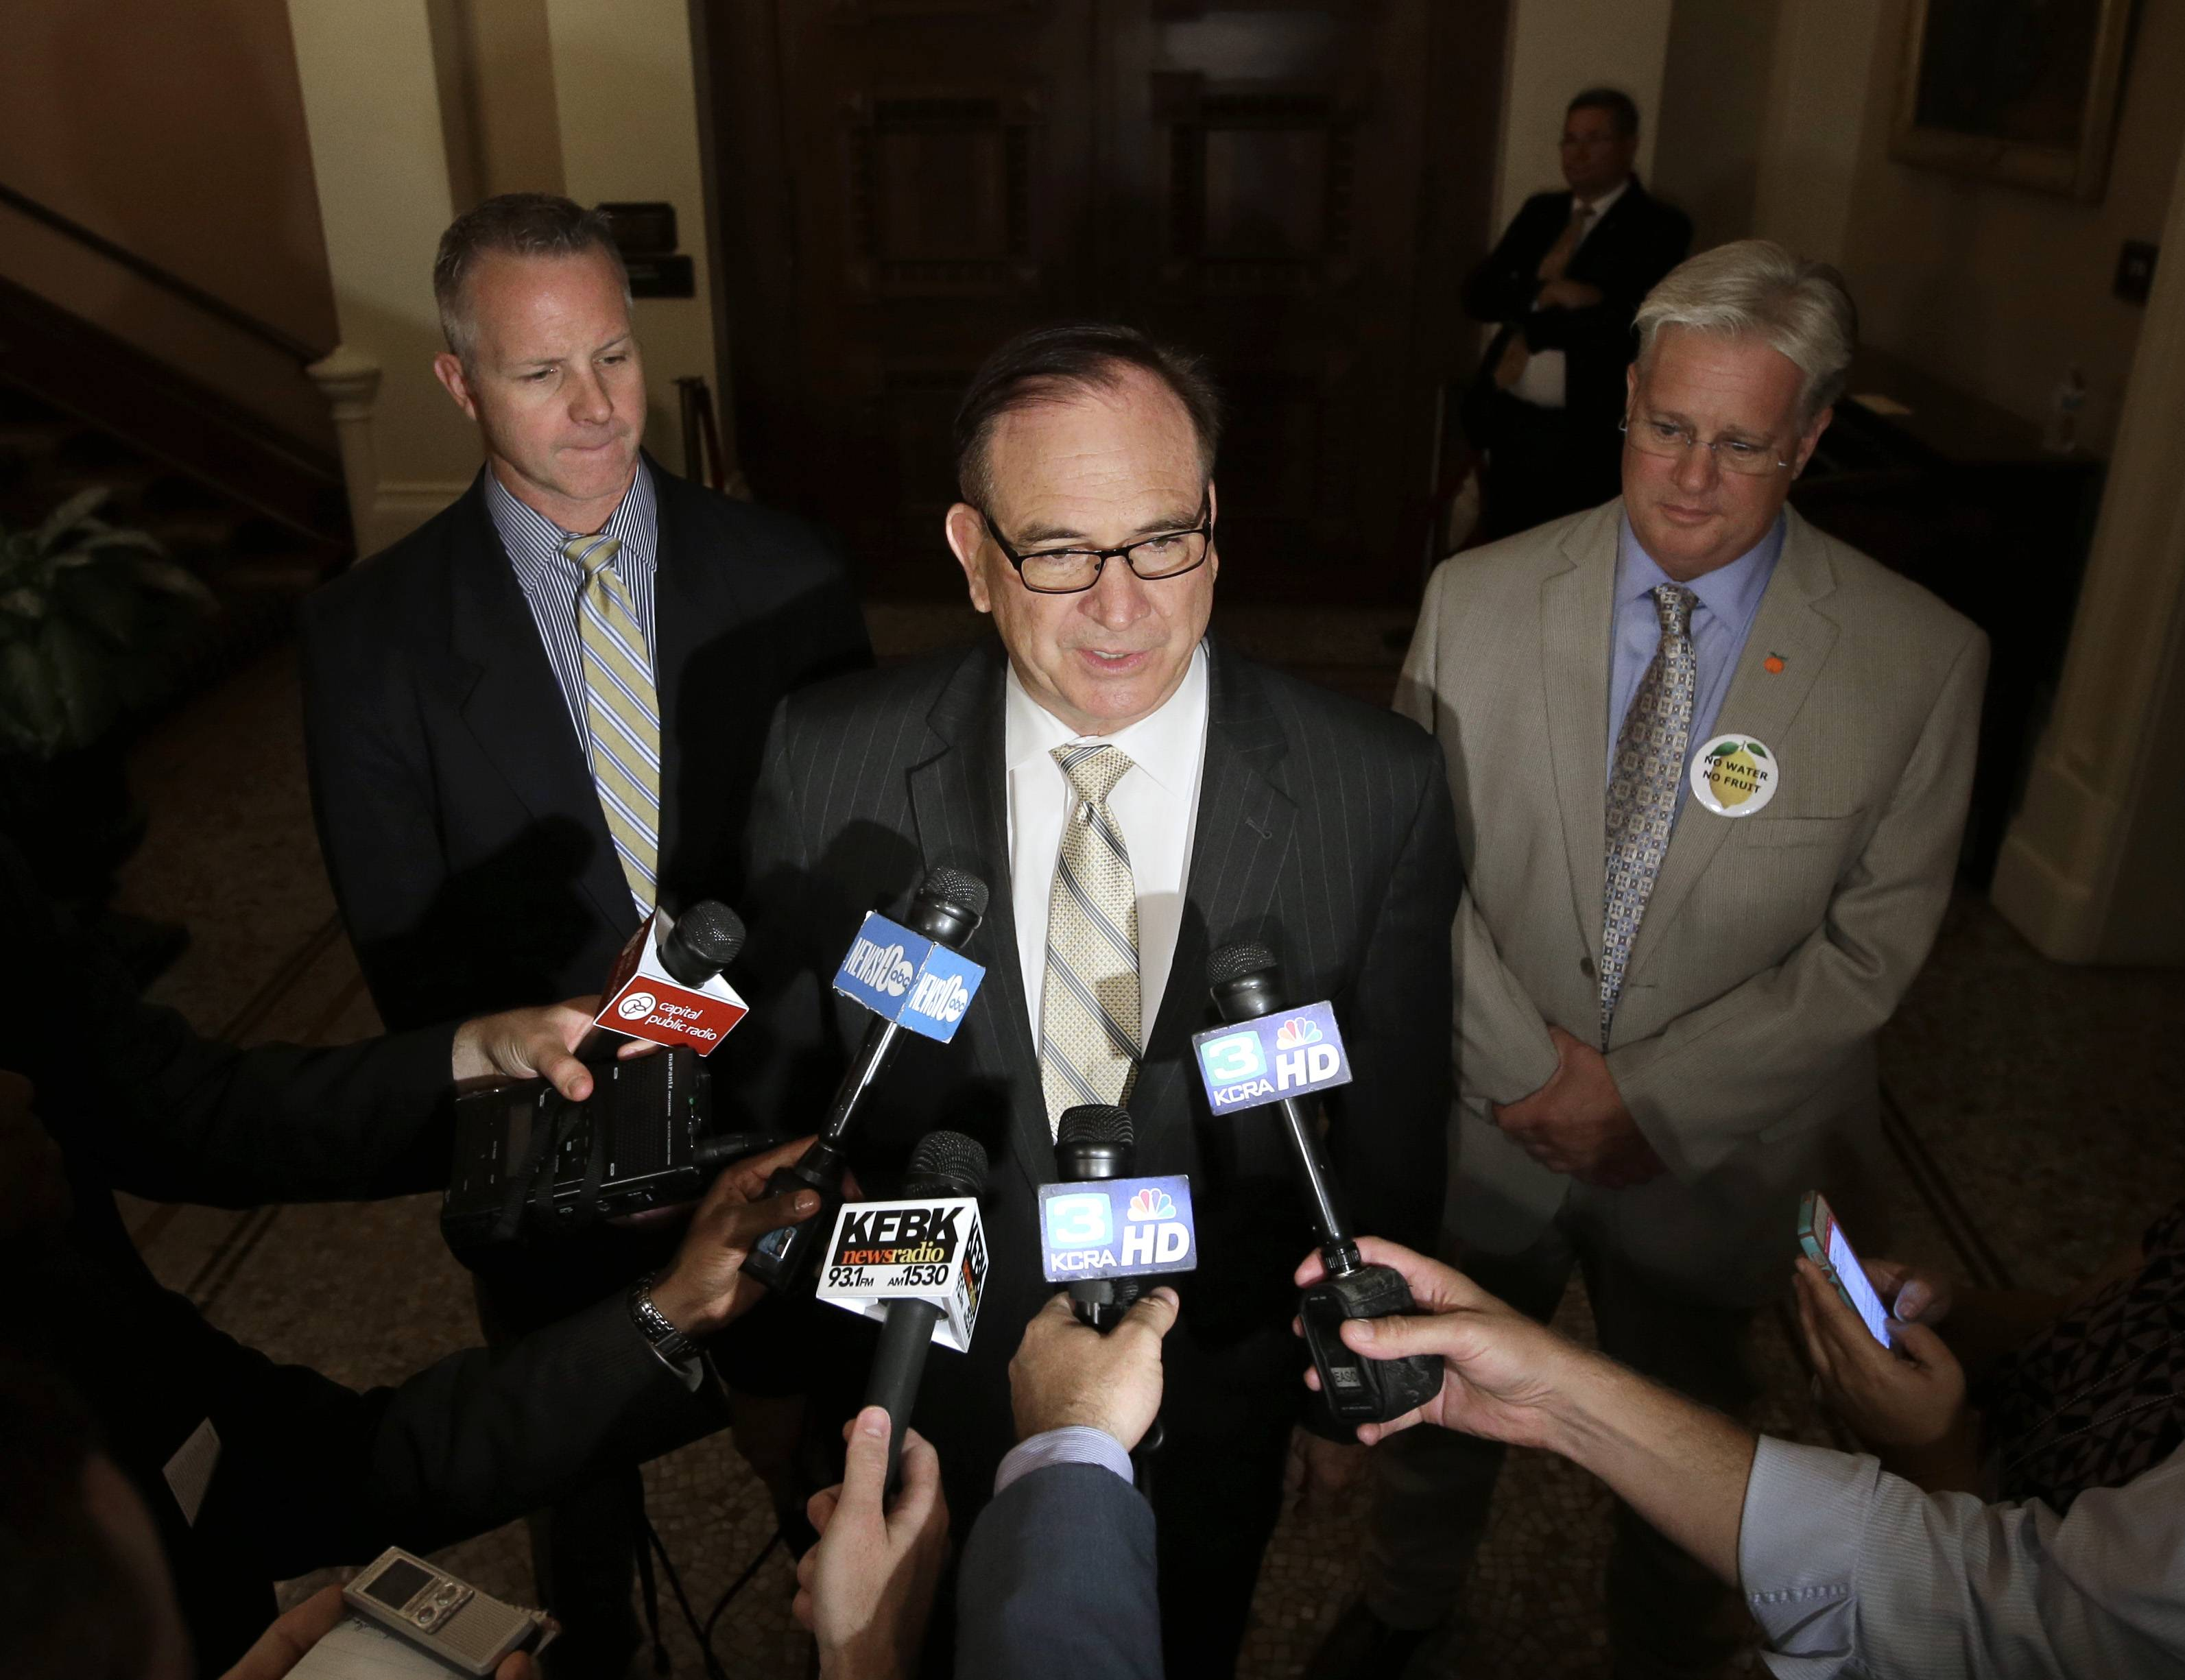 Senate Minority Leader Bob Huff, R-Diamond Bar, center, accompanied by GOP Sens. Anthony Canella, of Ceres, left, and Andy Vidak, of Hanford, tells reporters that his caucus would provide enough votes to pass a compromise water bond measure in Sacramento, Calif. on Wednesday, Aug. 13, 2014. The $7.5 billion compromise bond proposal emerged after hours of negotiations between Gov. Jerry Brown and legislative leaders from both parties.